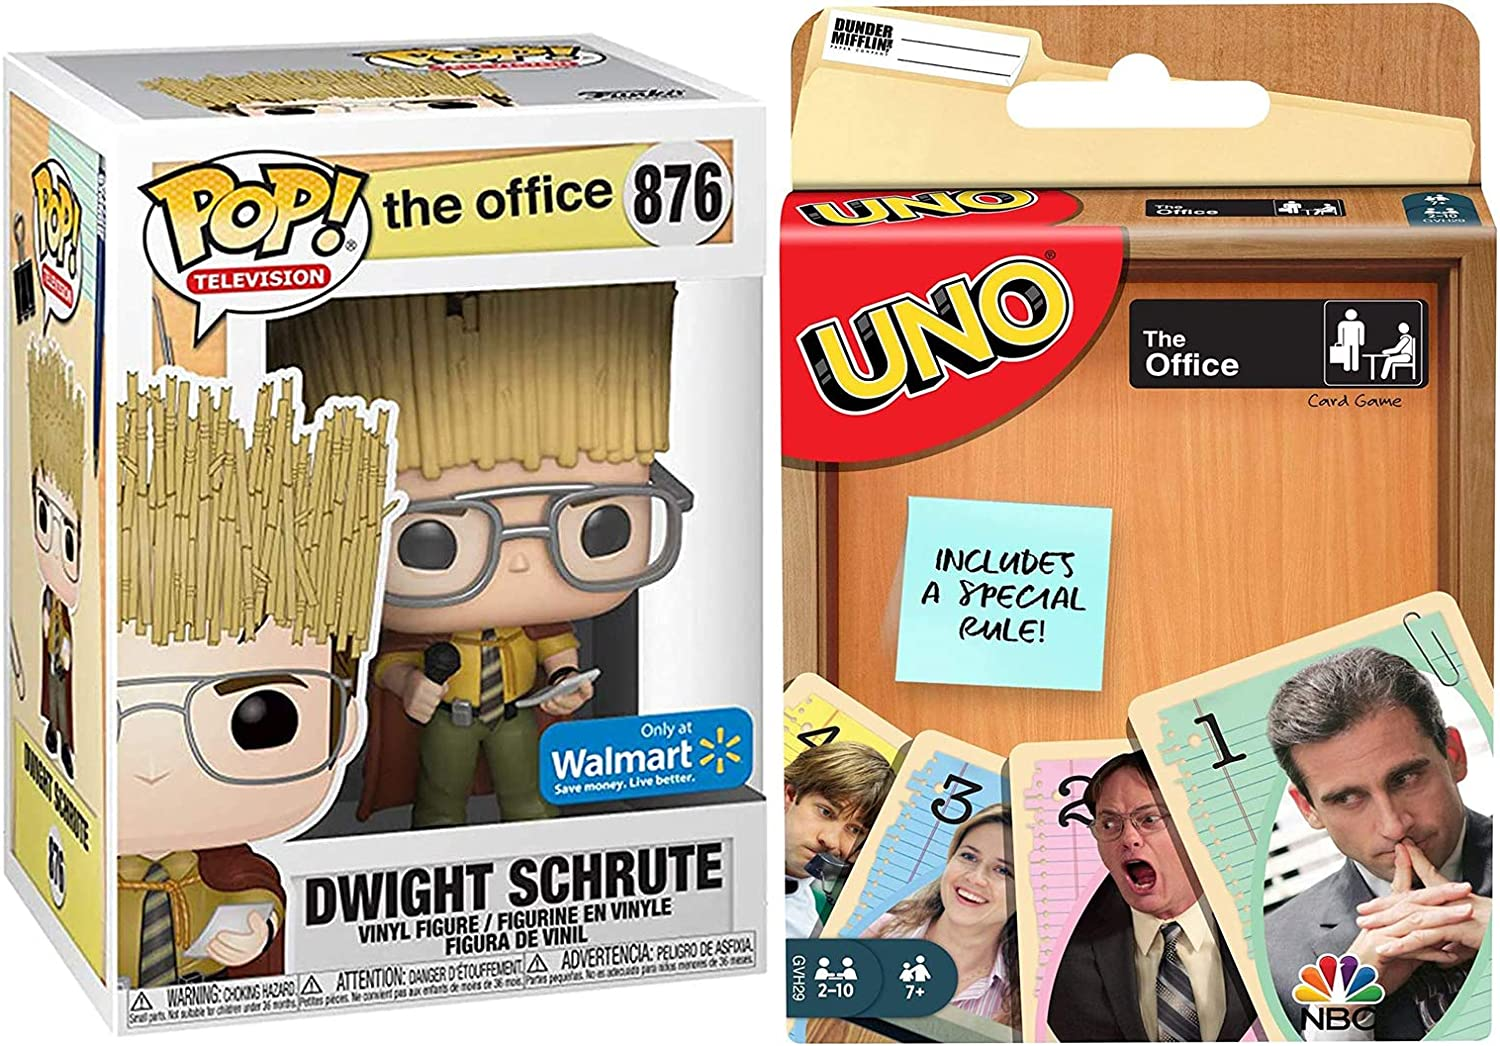 Dwight Pop! Exclusive Figure Schrute Vinyl All Hail The Hay King! Collectible Bundled with NBC Uno Dunder-Mifflin Office Matching Card Game 2 Items